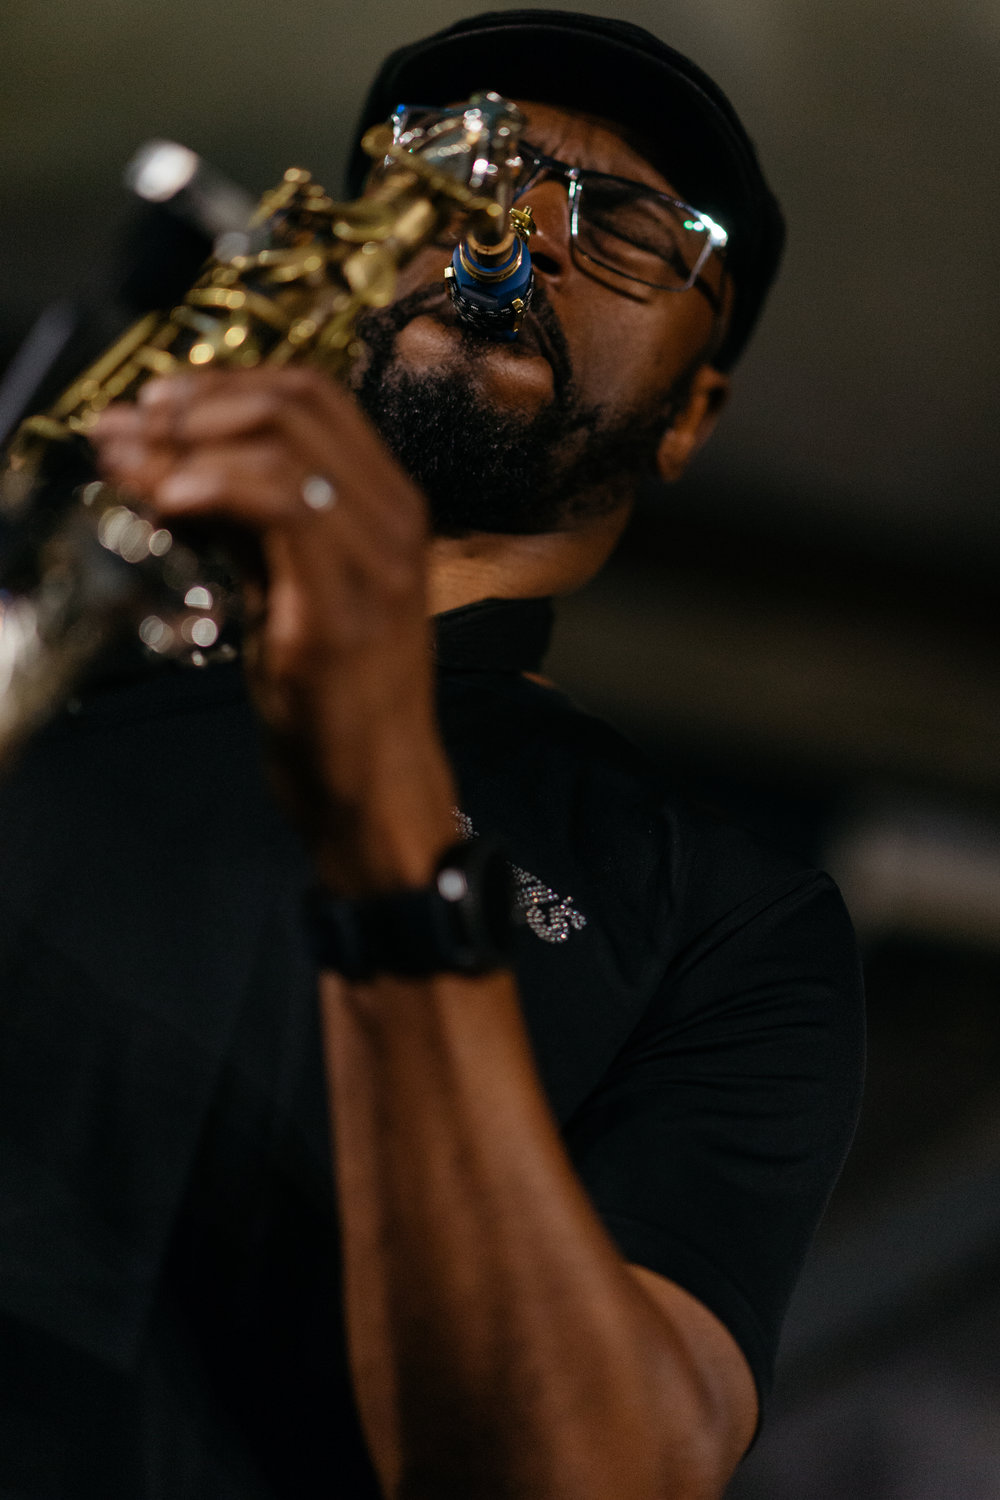 20180622-Marlon_Boone_at_the_Bottomline-29.jpg